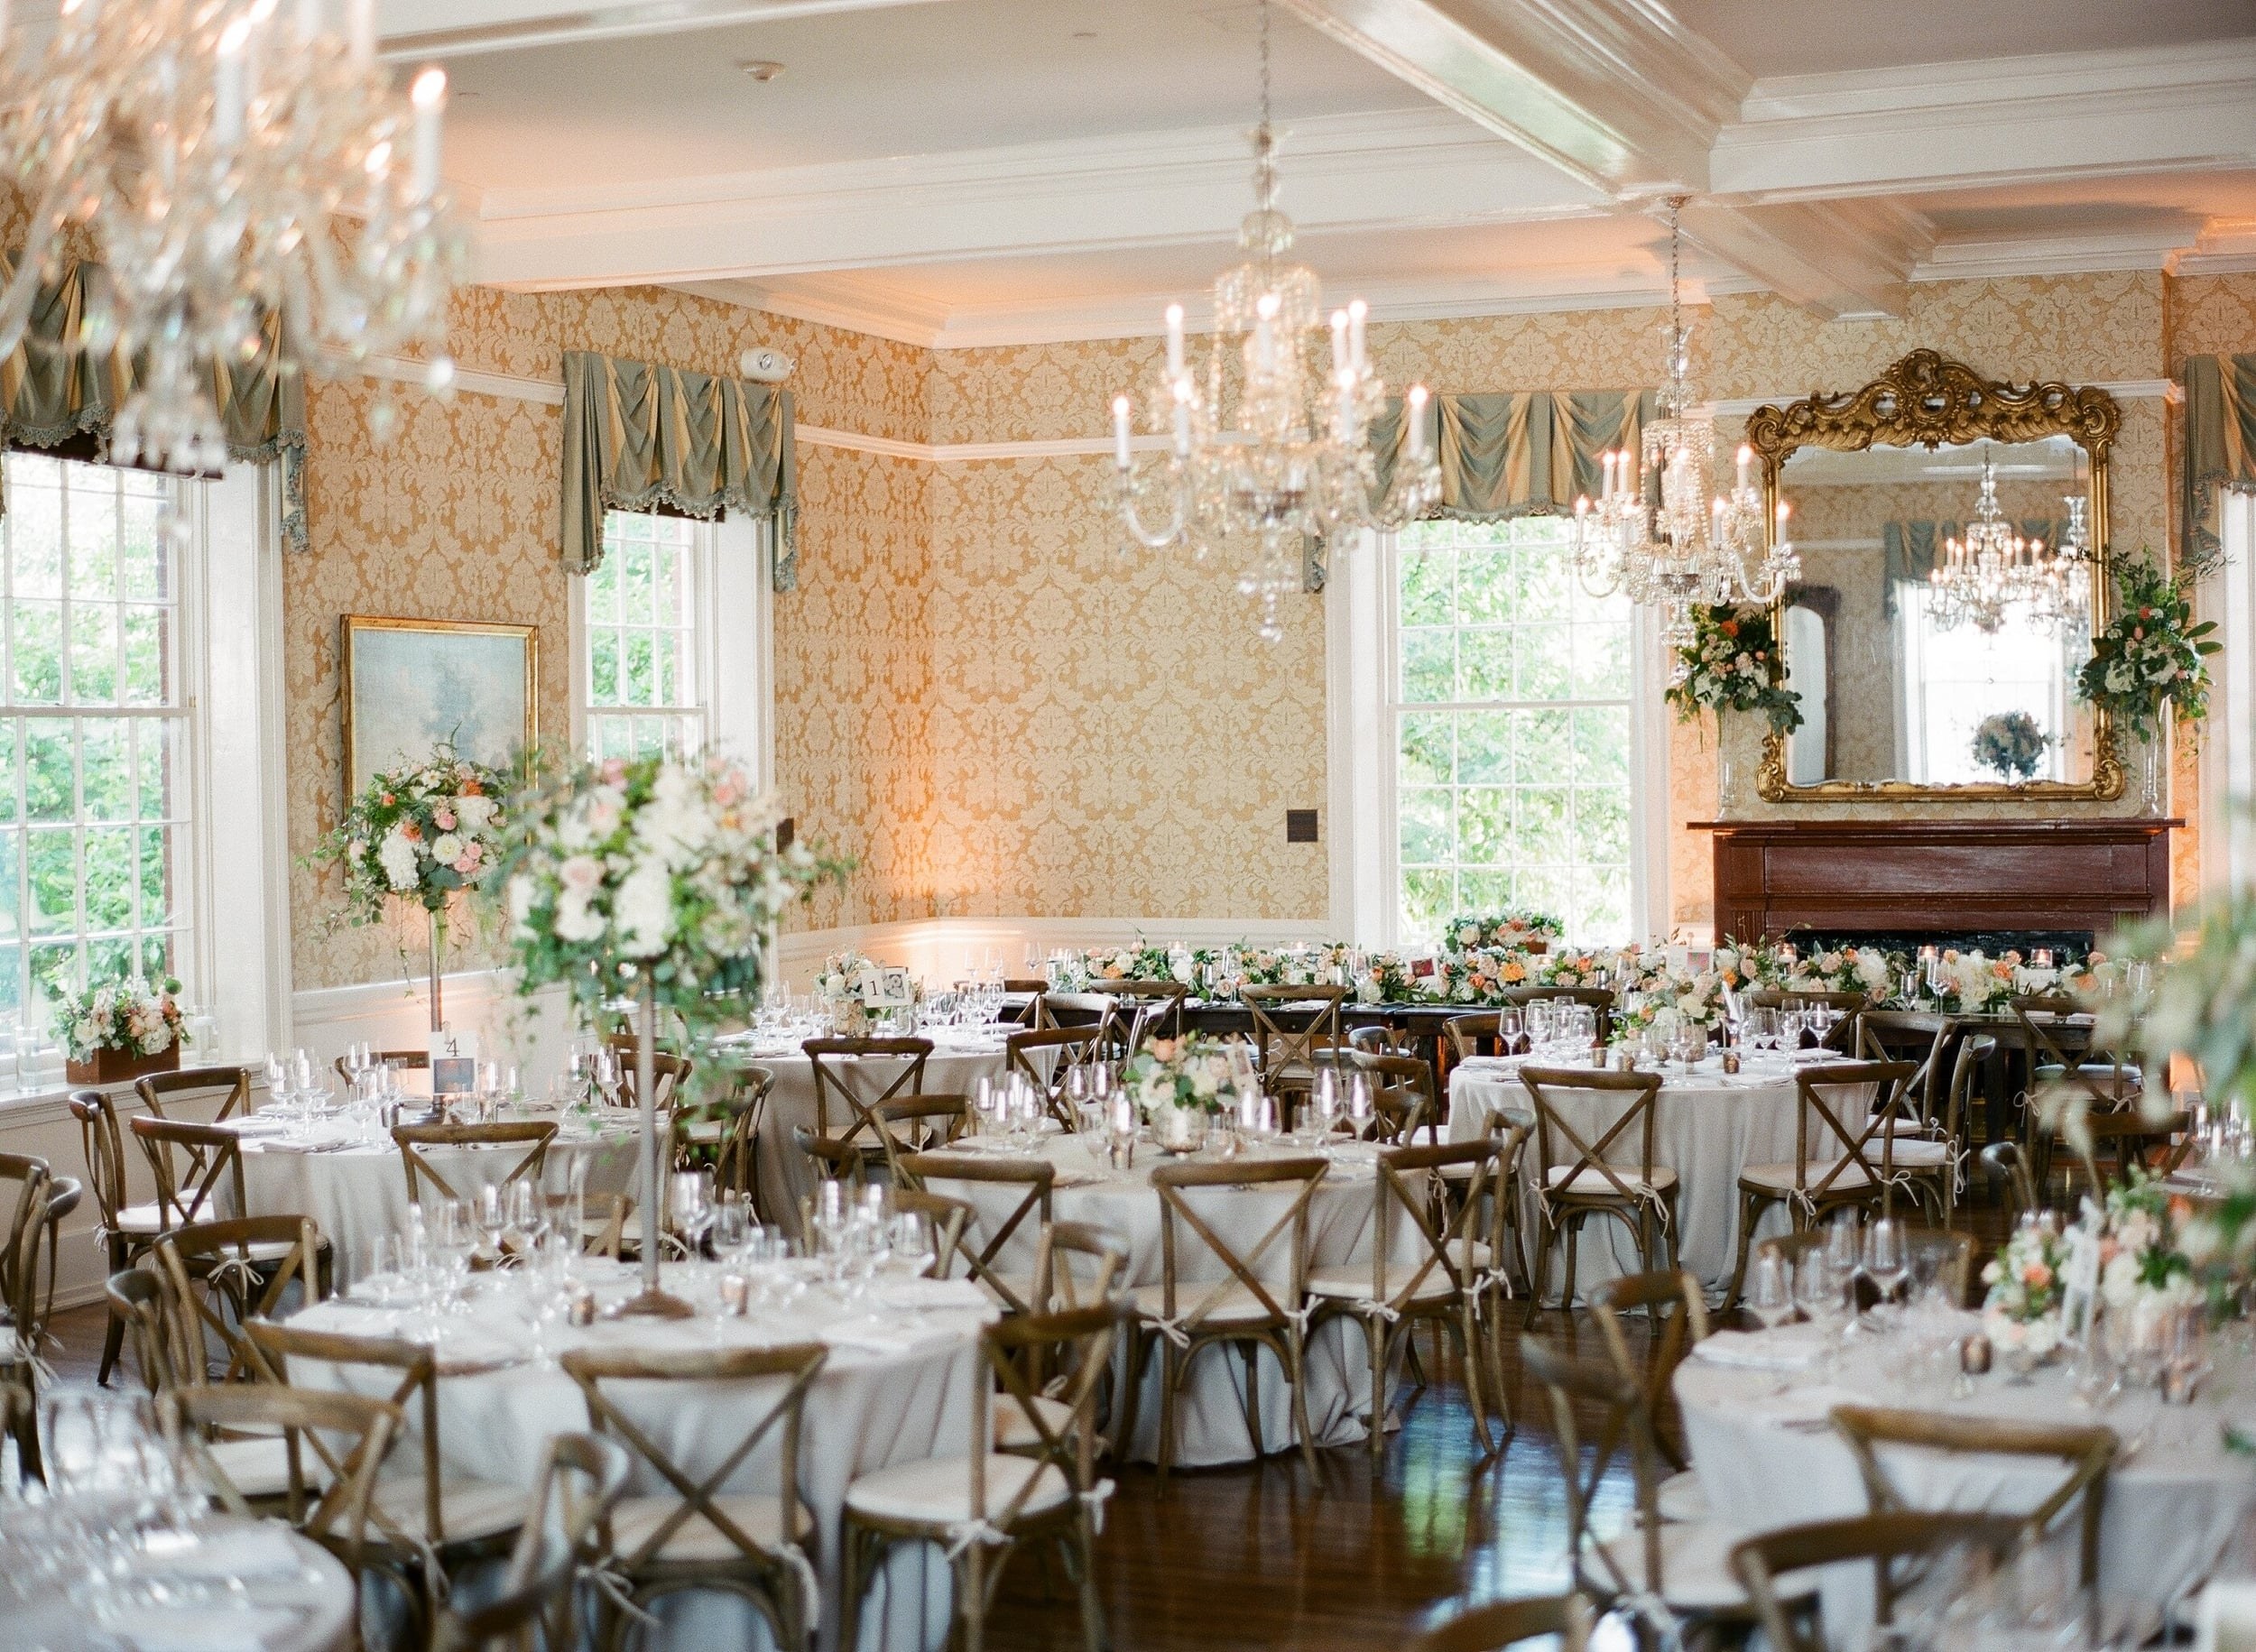 Hannah + Evan's reception was also held at Saint Mary's School in Raleigh, North Carolina.